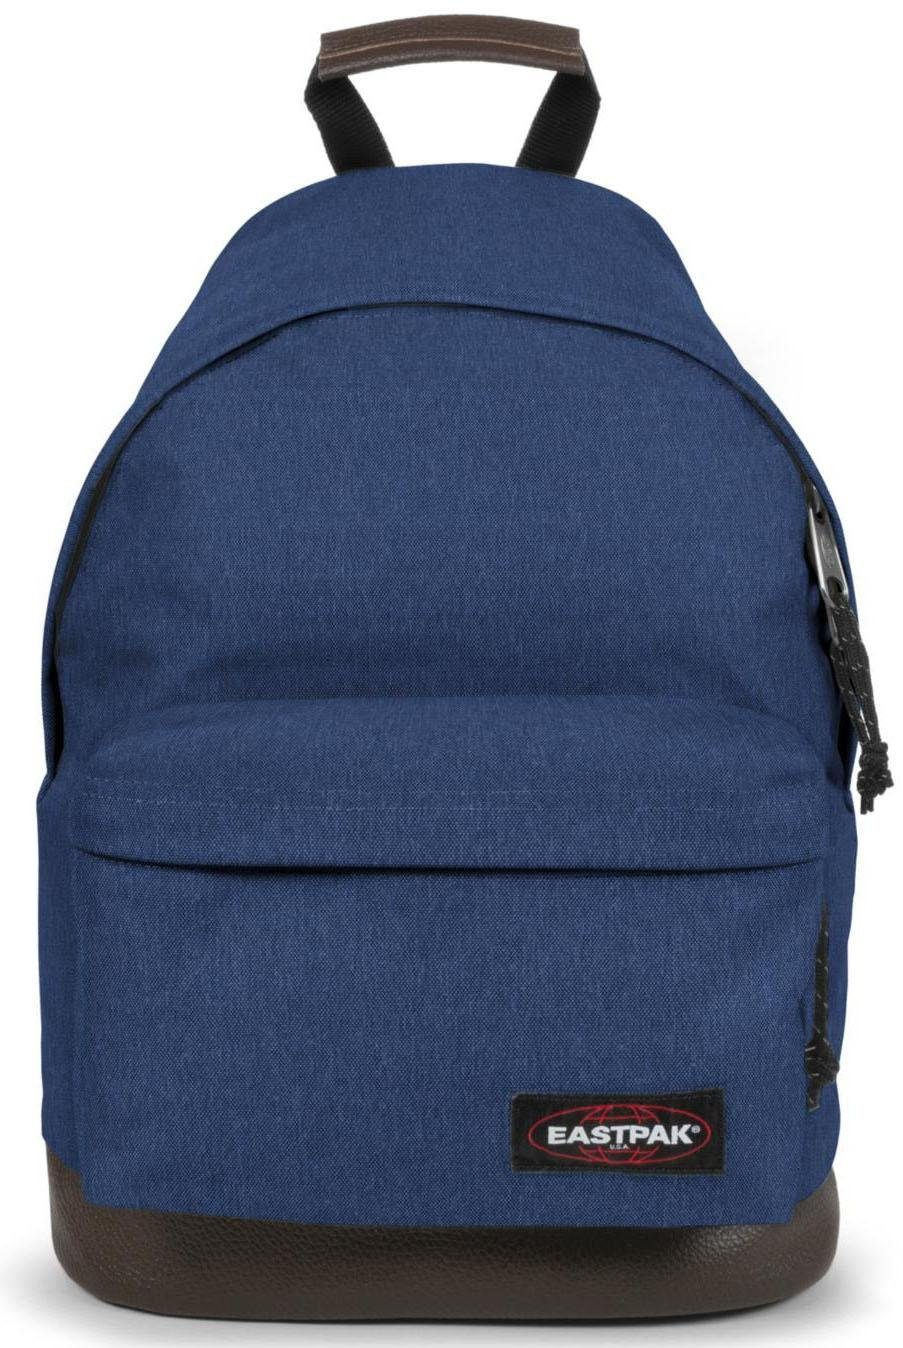 Eastpak Rucksack, »WYOMING, crafty blue«